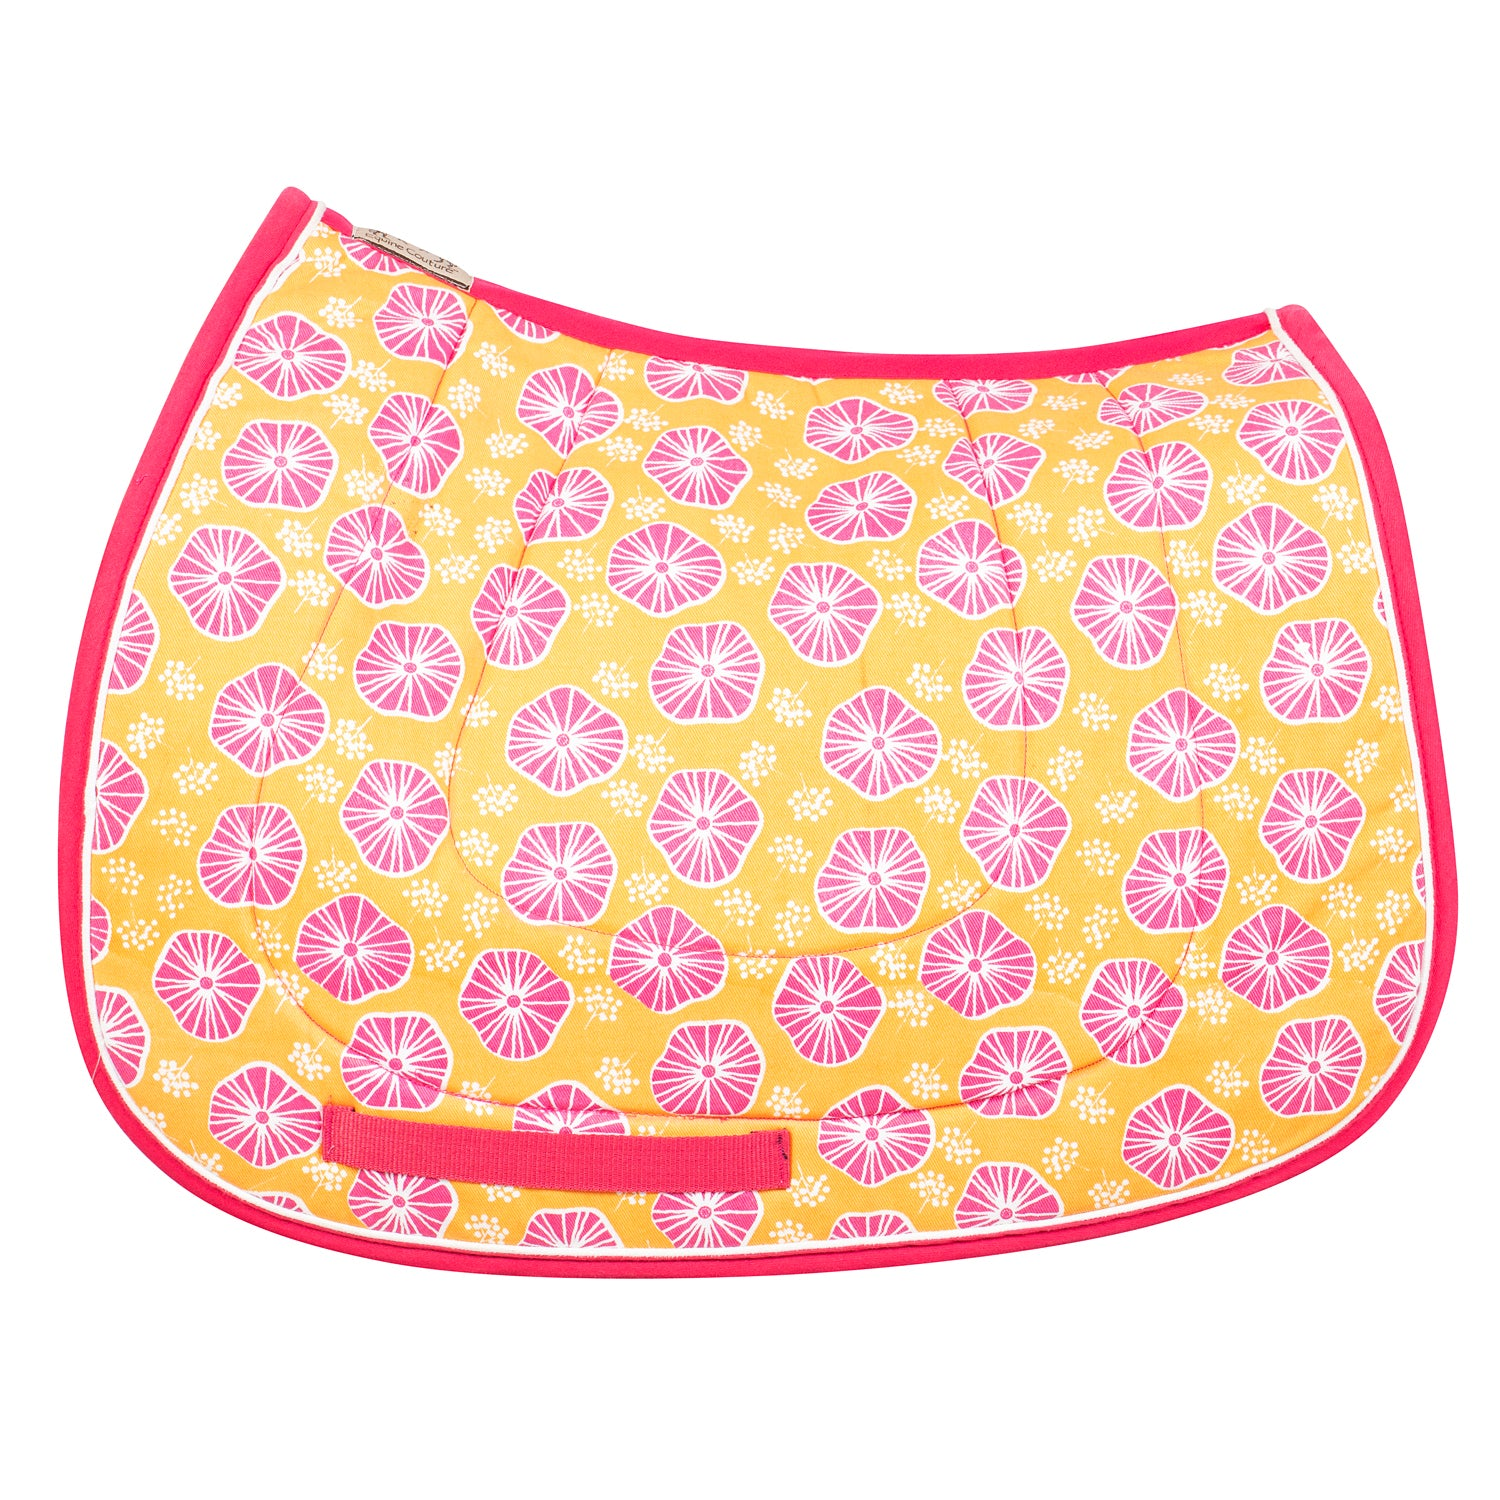 Equine Couture Athena Pony Saddle Pad_1876